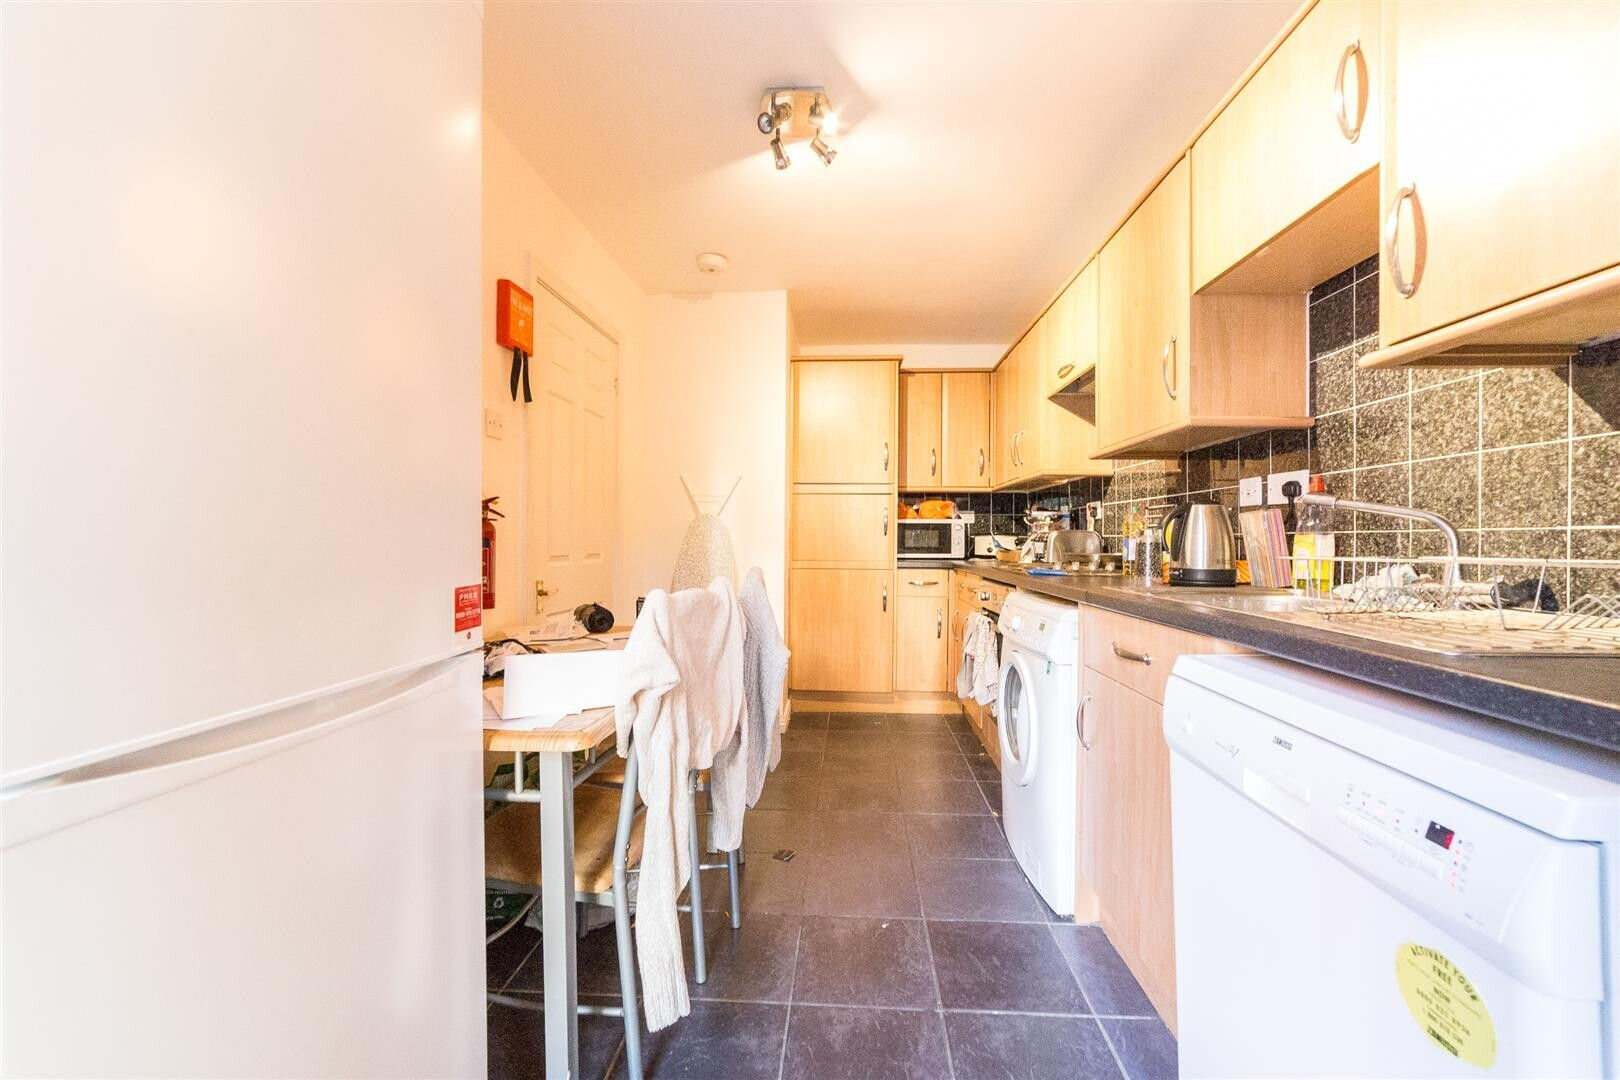 2 bedroom student house in Jesmond, Newcastle